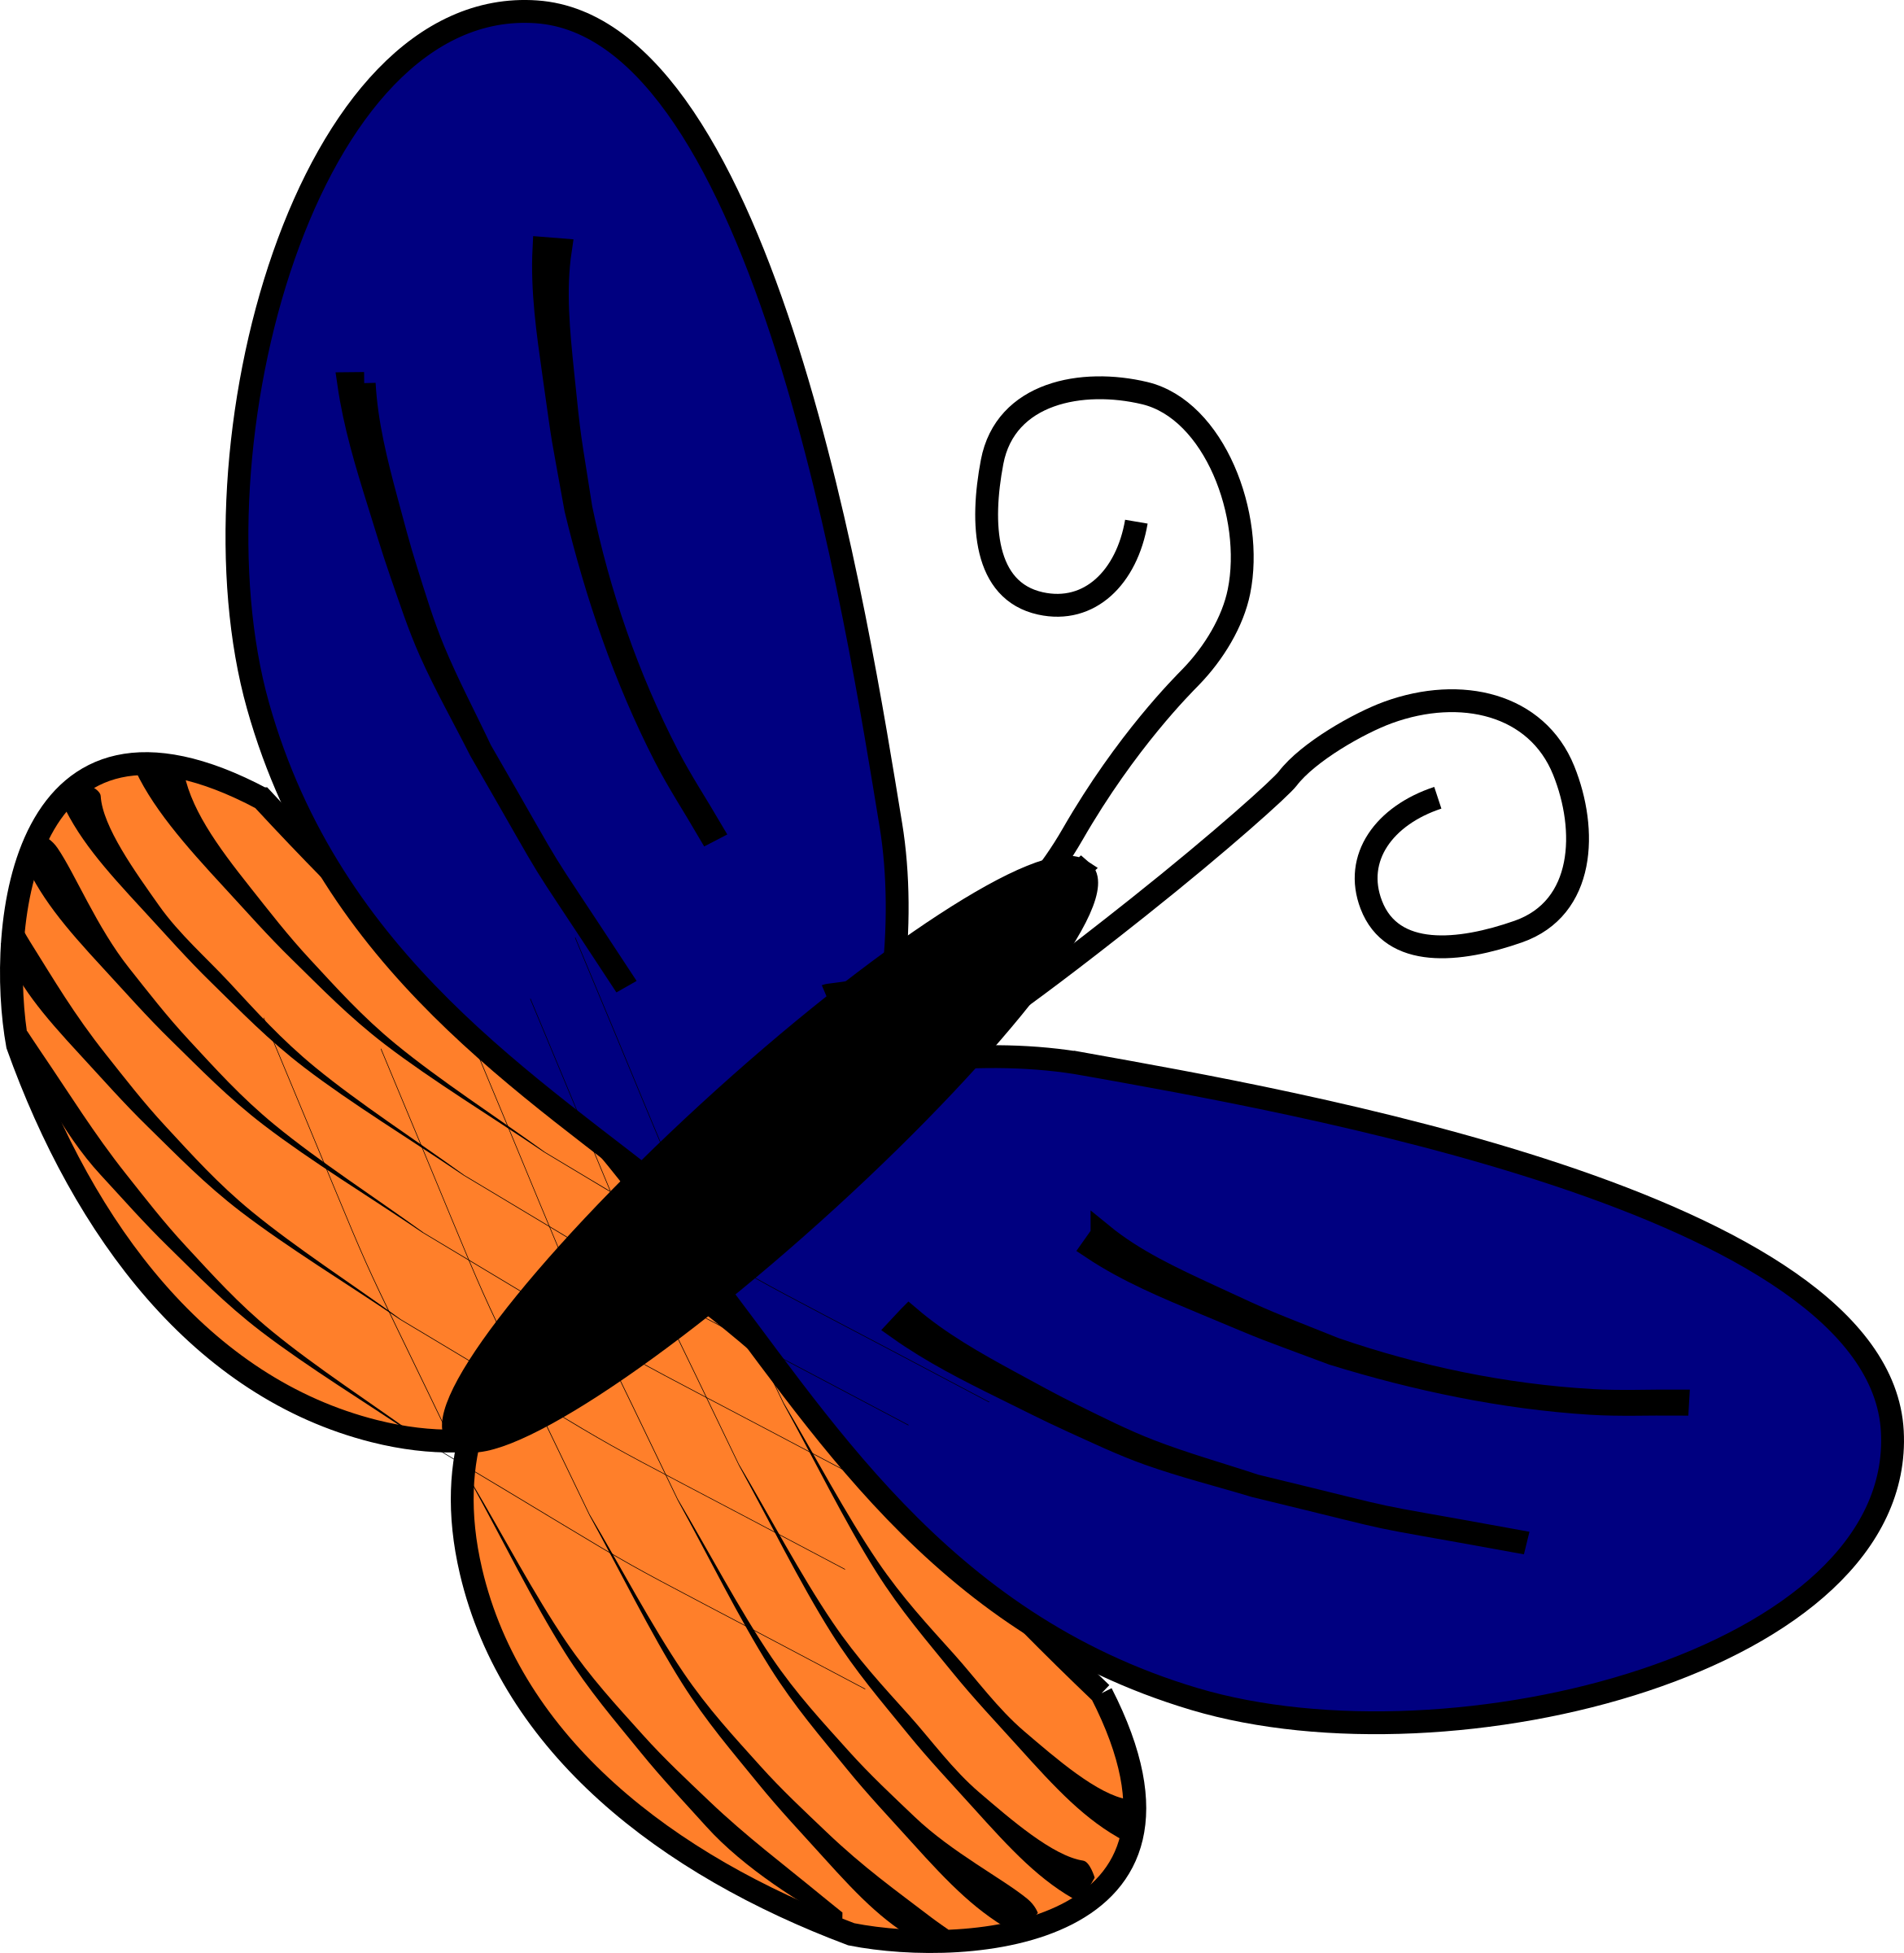 Blue and orange butterfly by MiniCesc